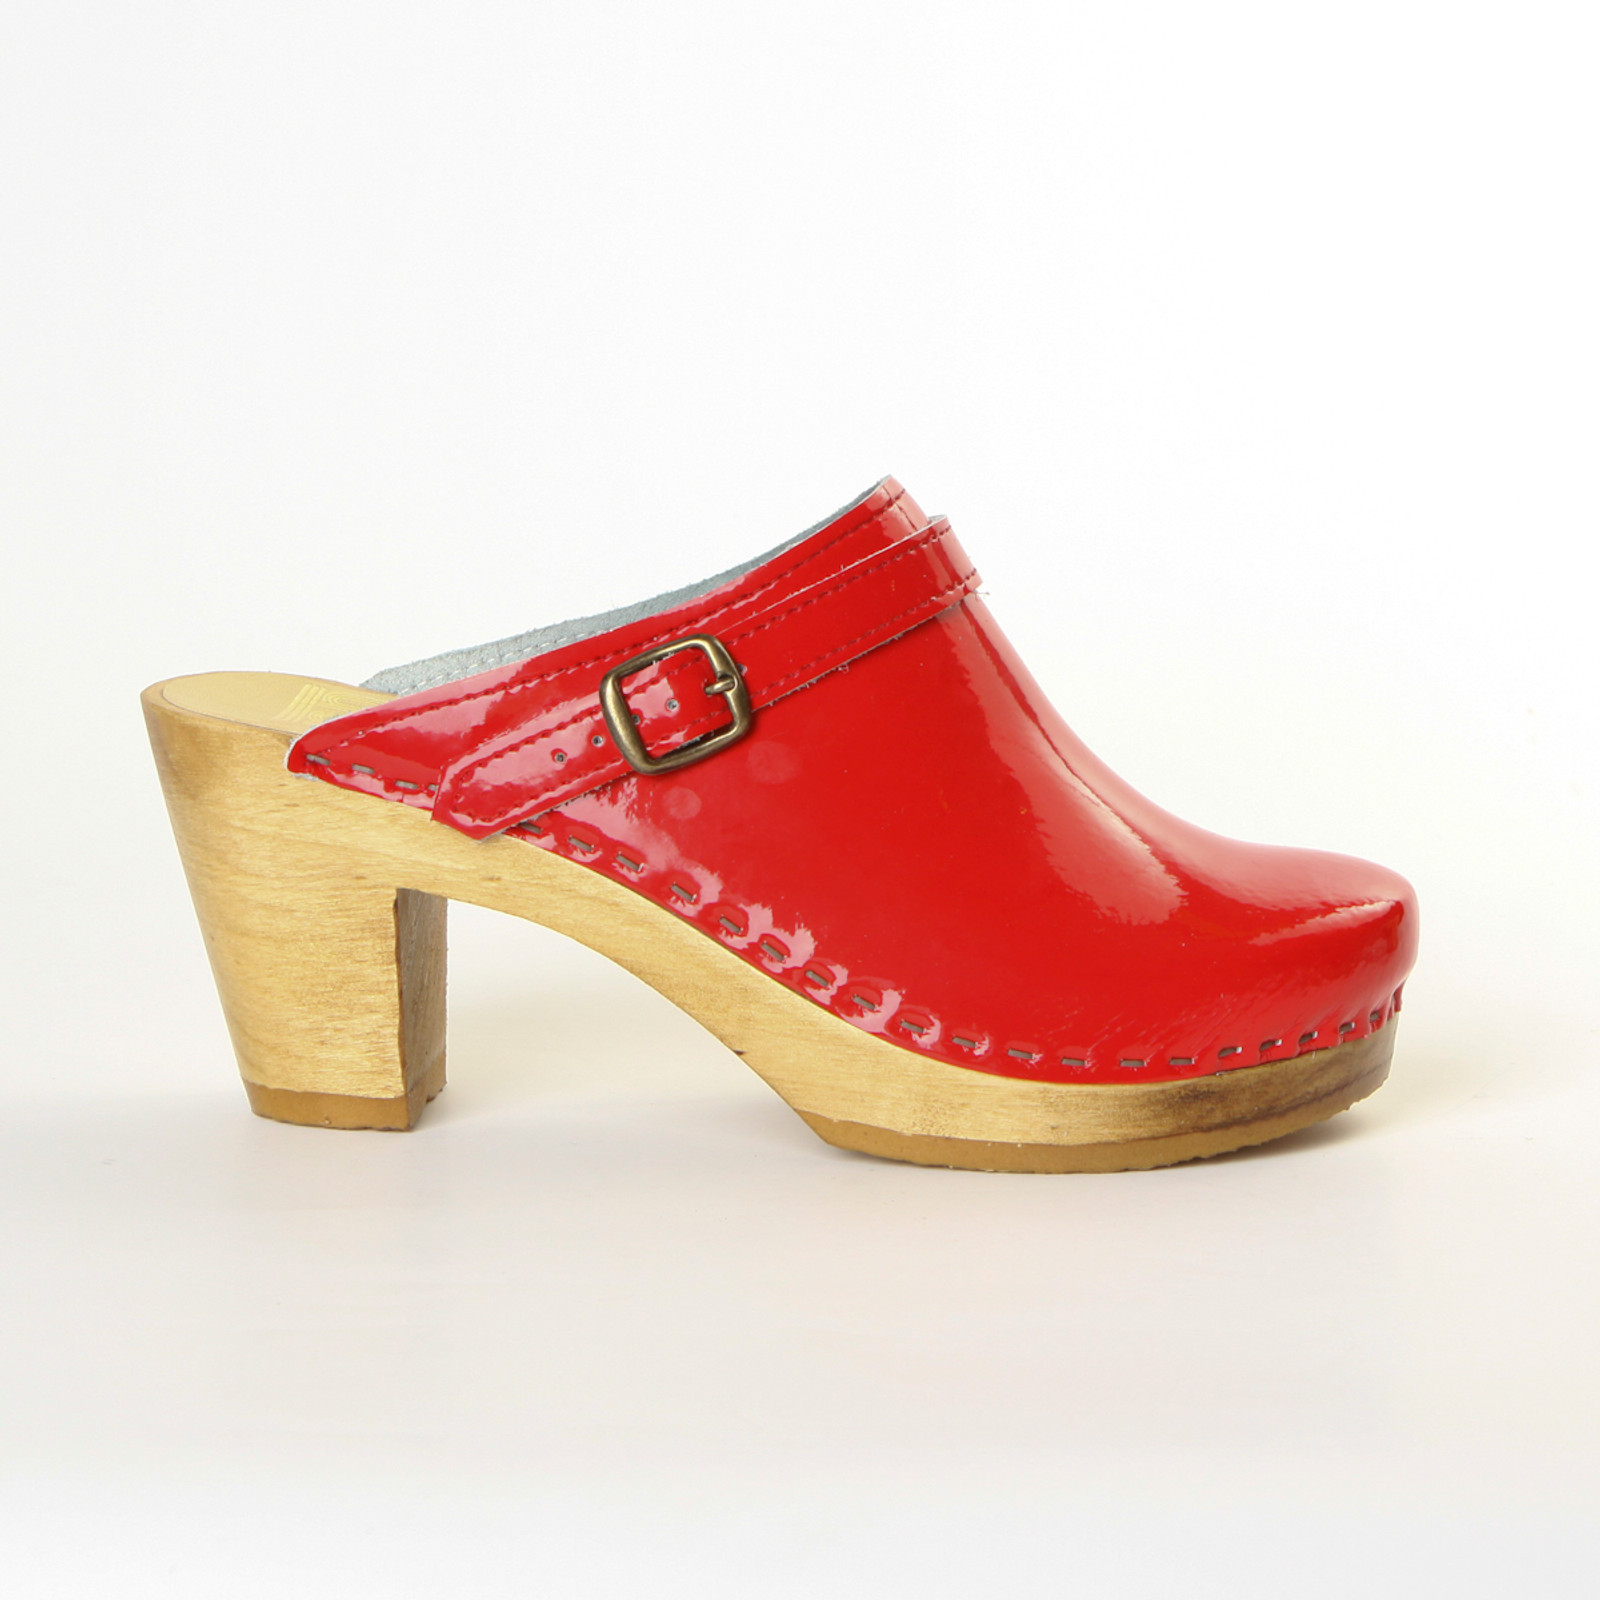 Red Patent Leather with Brown Base.